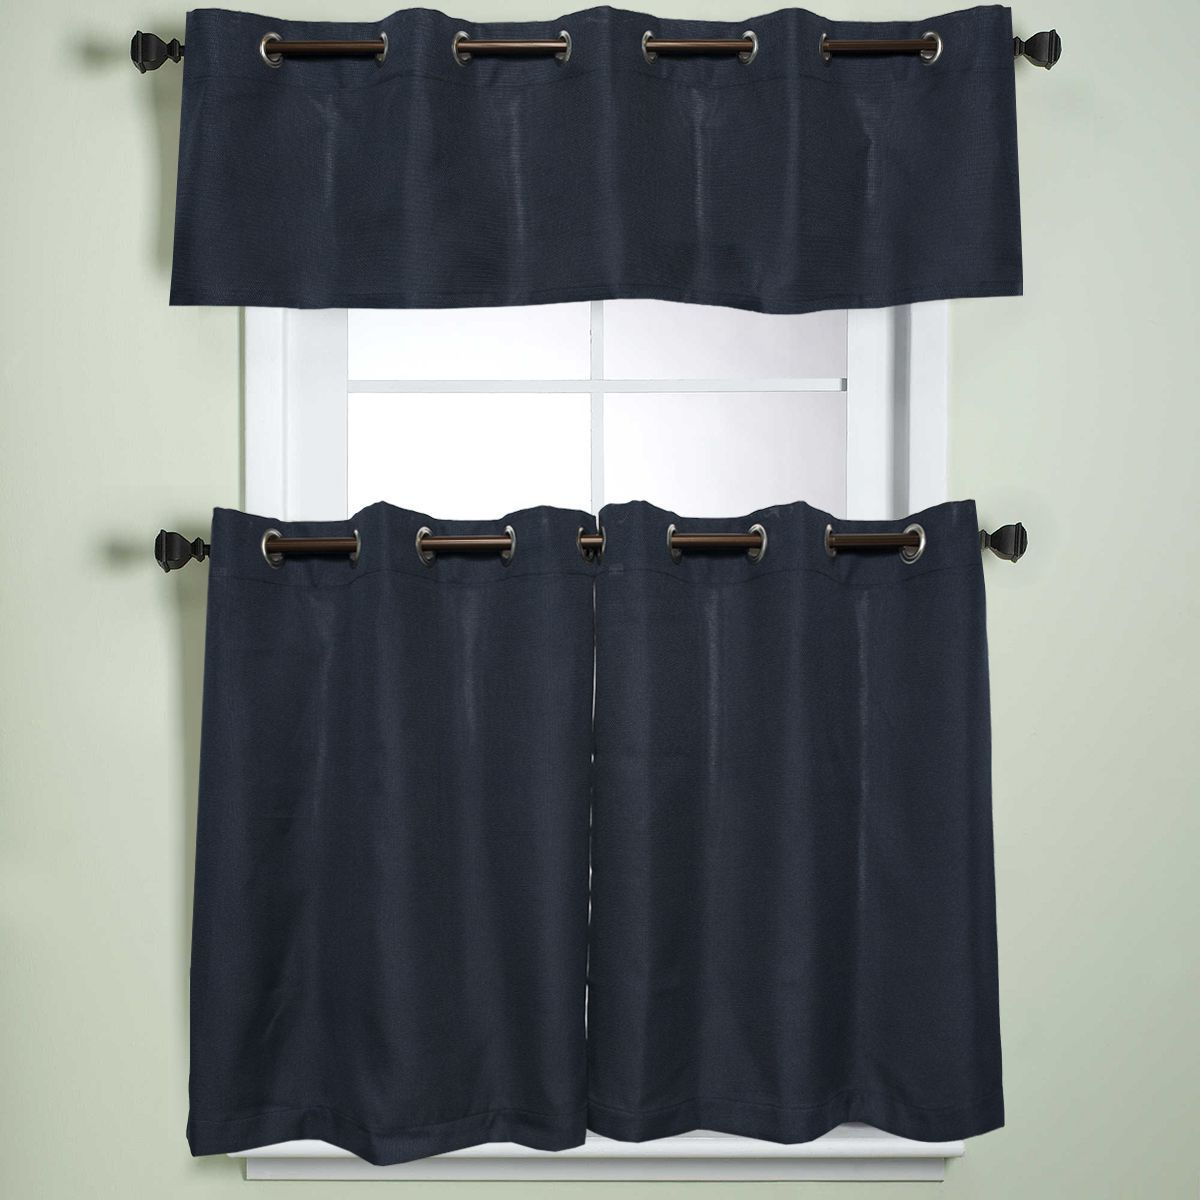 Popular Modern Subtle Texture Solid White Kitchen Curtain Parts With Grommets Tier And Valance Options Within Modern Subtle Texture Solid Navy Kitchen Curtain Parts With (View 3 of 20)